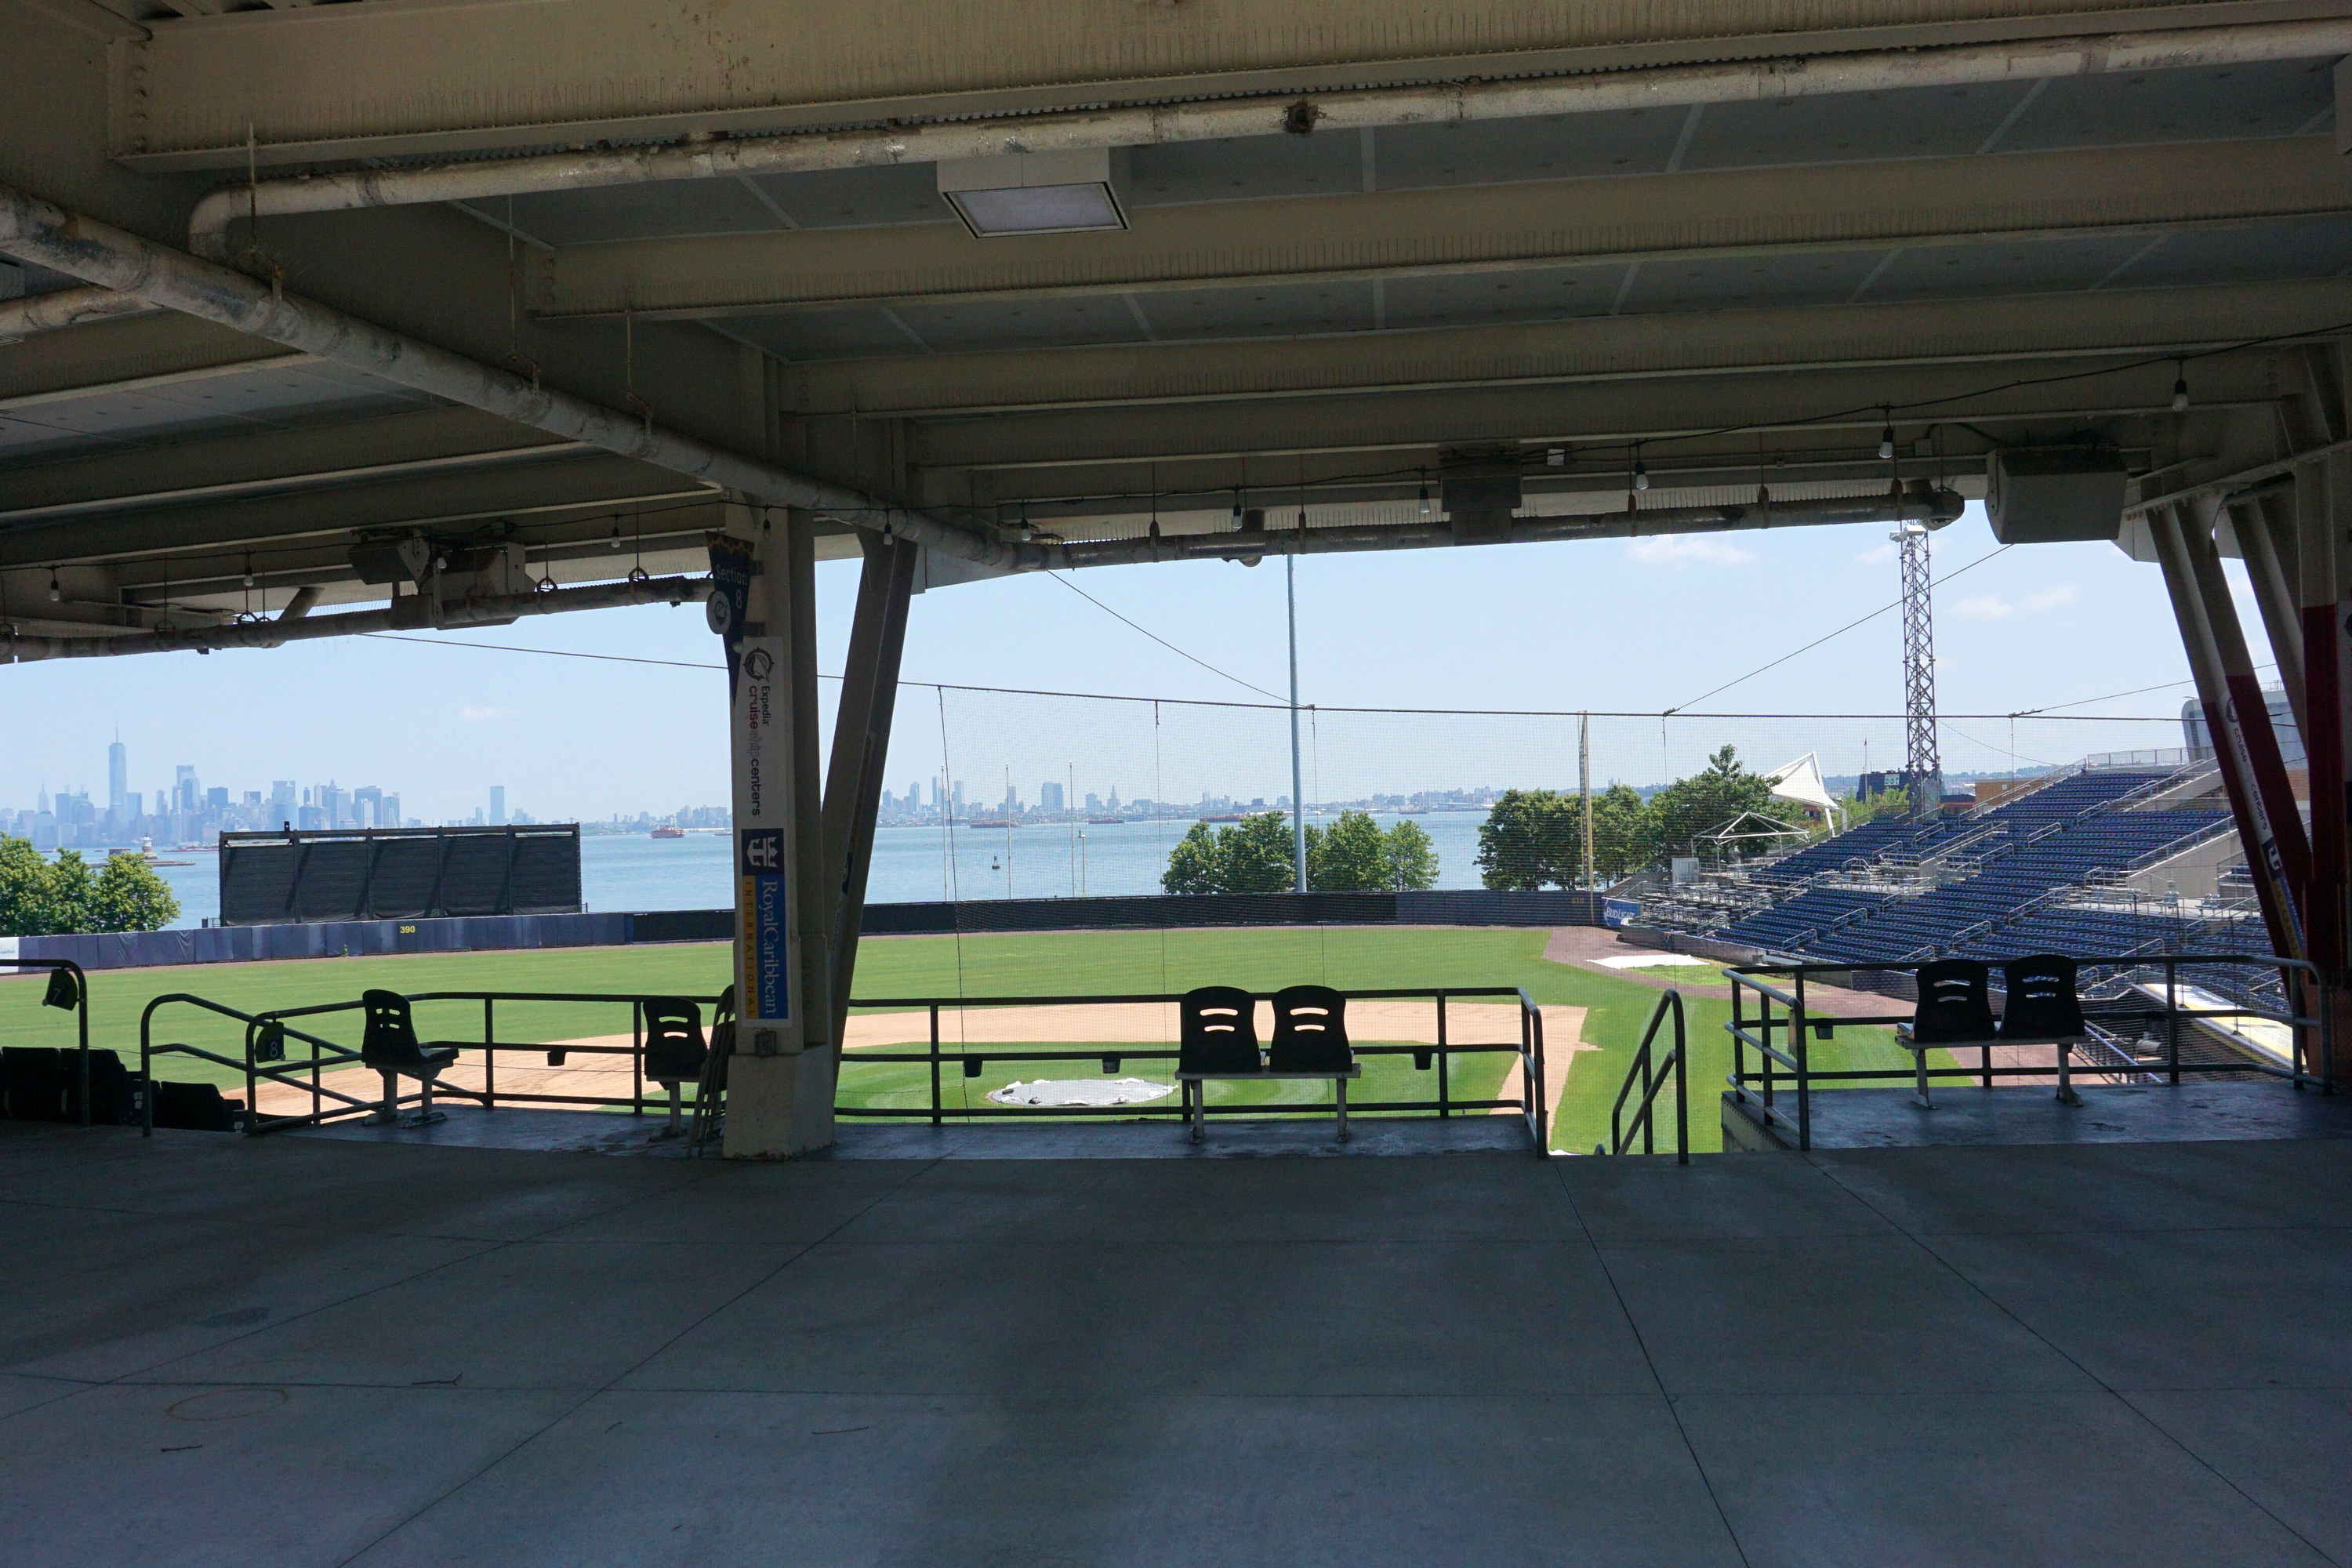 Richmond County Bank Ballpark, a stadium near the Staten Island Ferry Terminal which leases land from New York City, July 2, 2020.